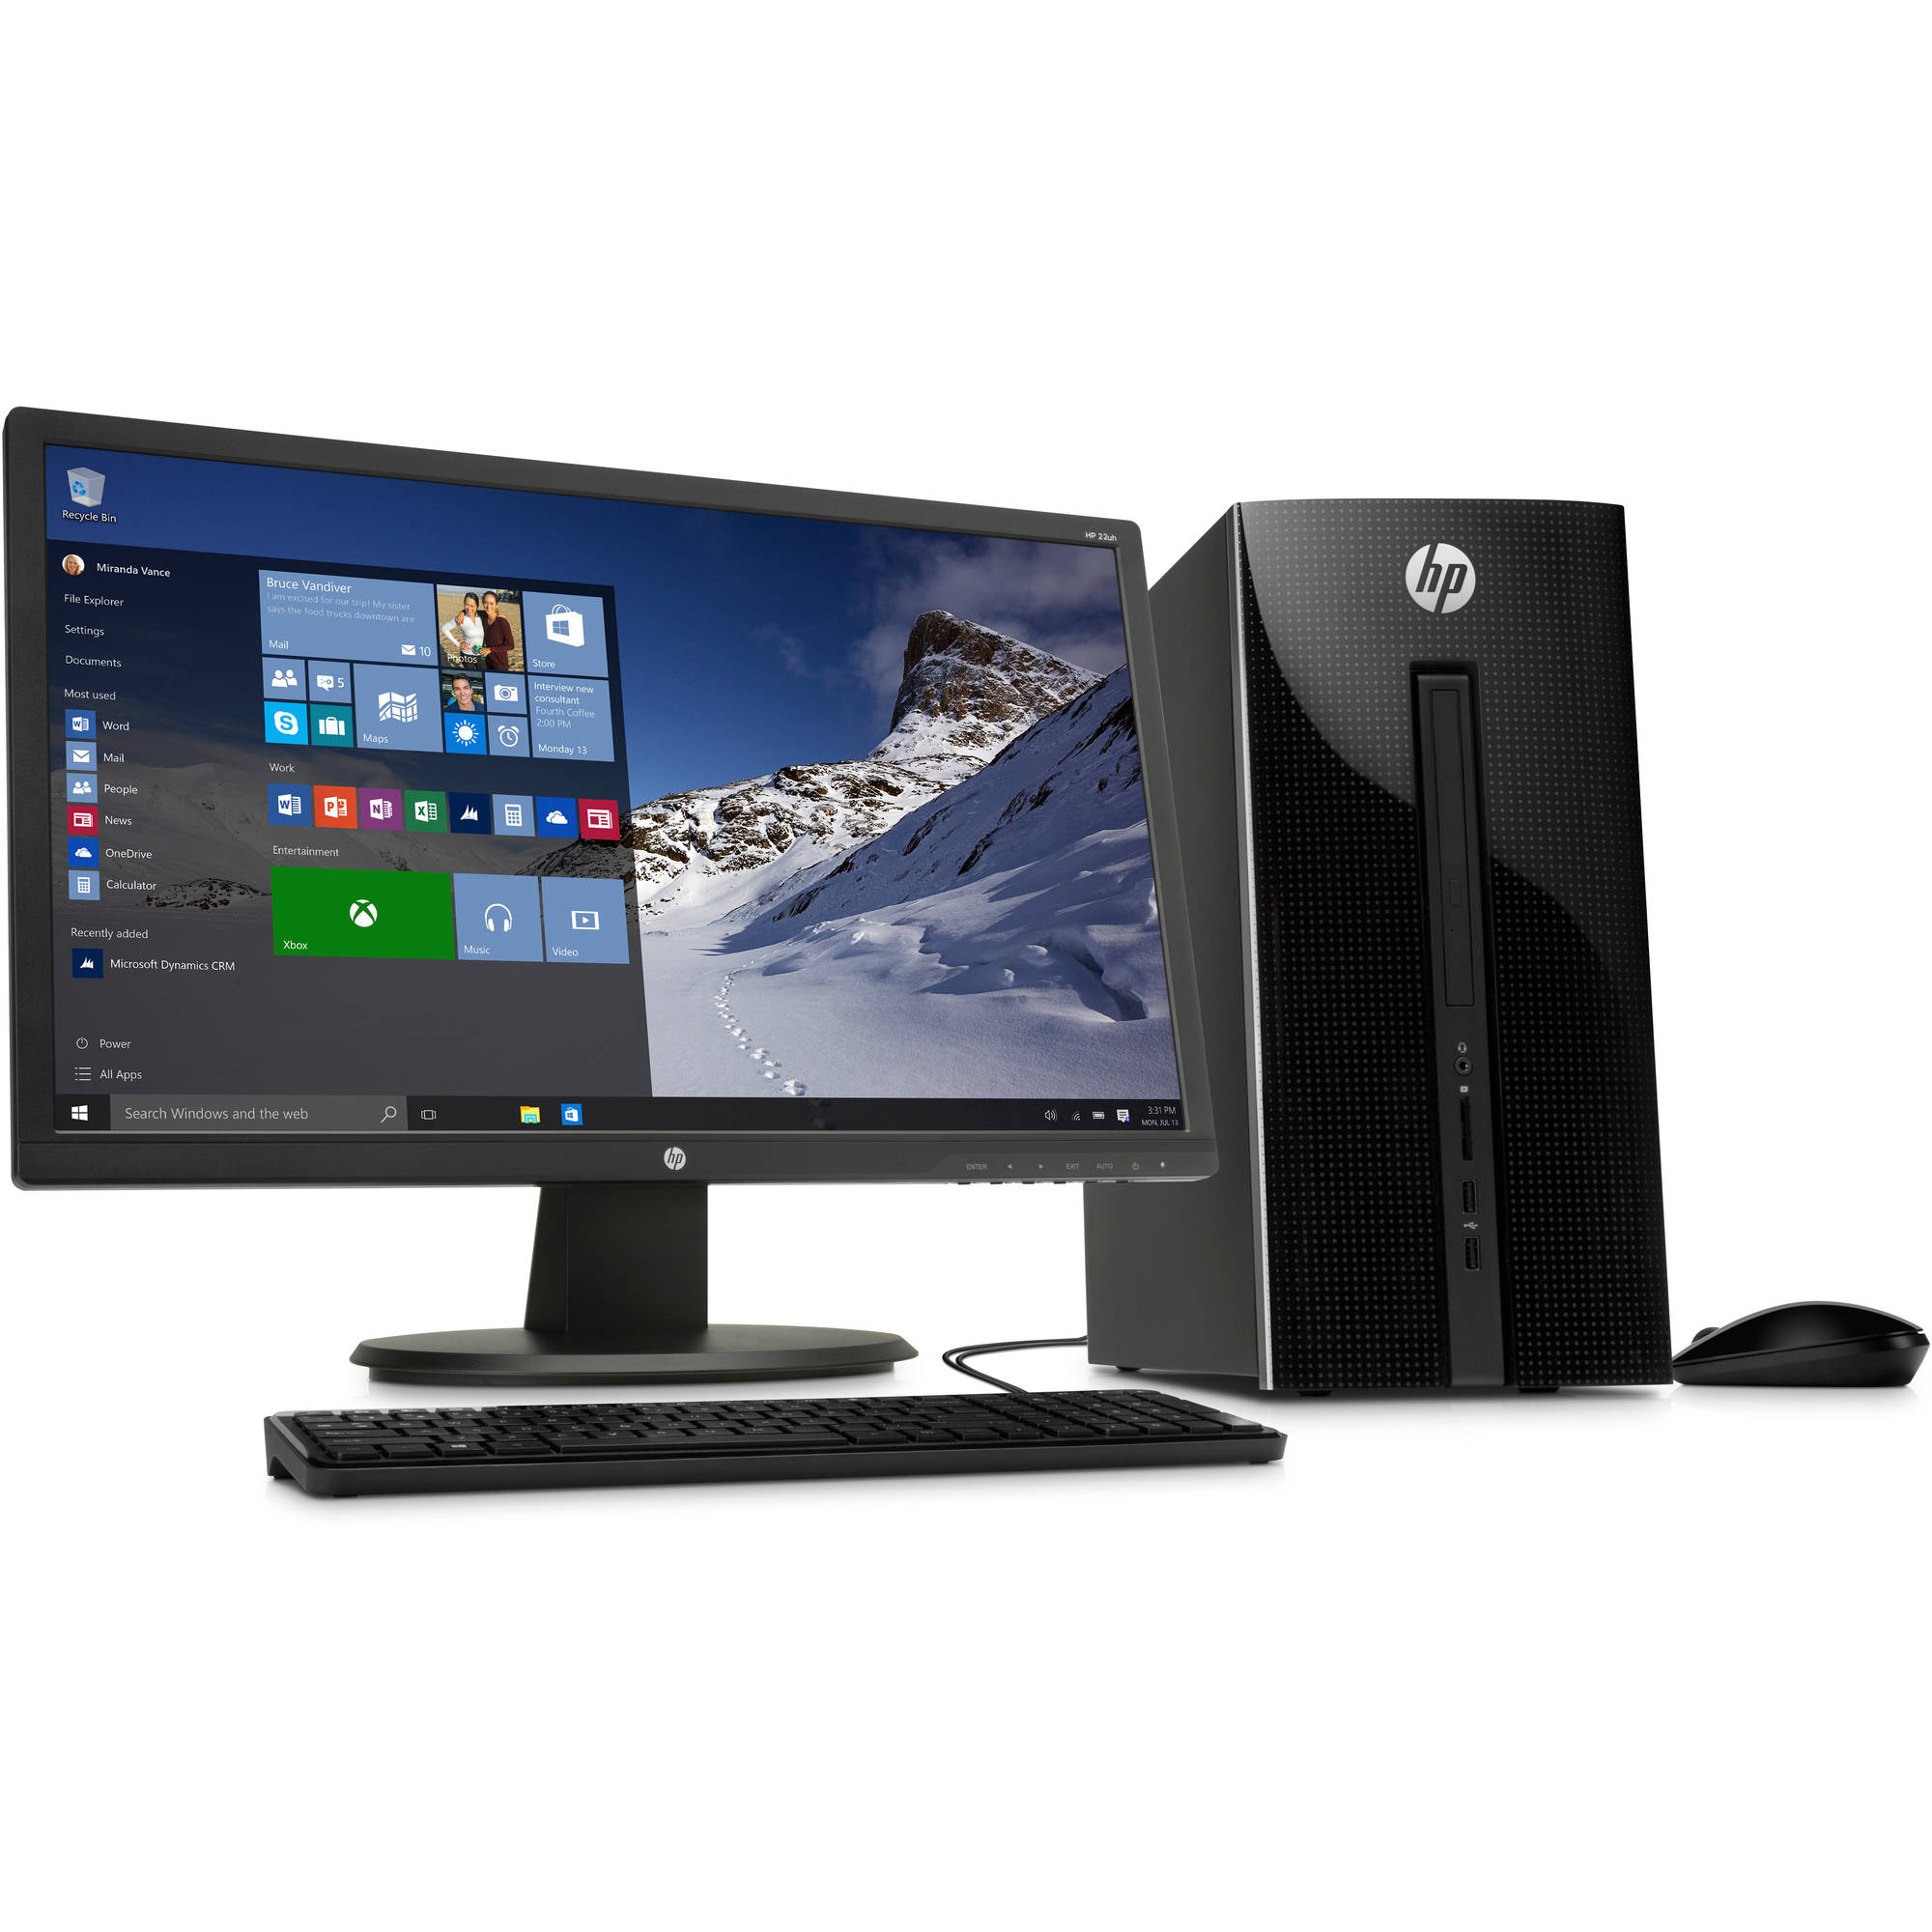 "HP 251-a123wb Desktop PC with Intel Pentium J2900 Processor, 4GB Memory, 21.5"" Monitor, 1TB Hard Drive and Windows 10 Home"